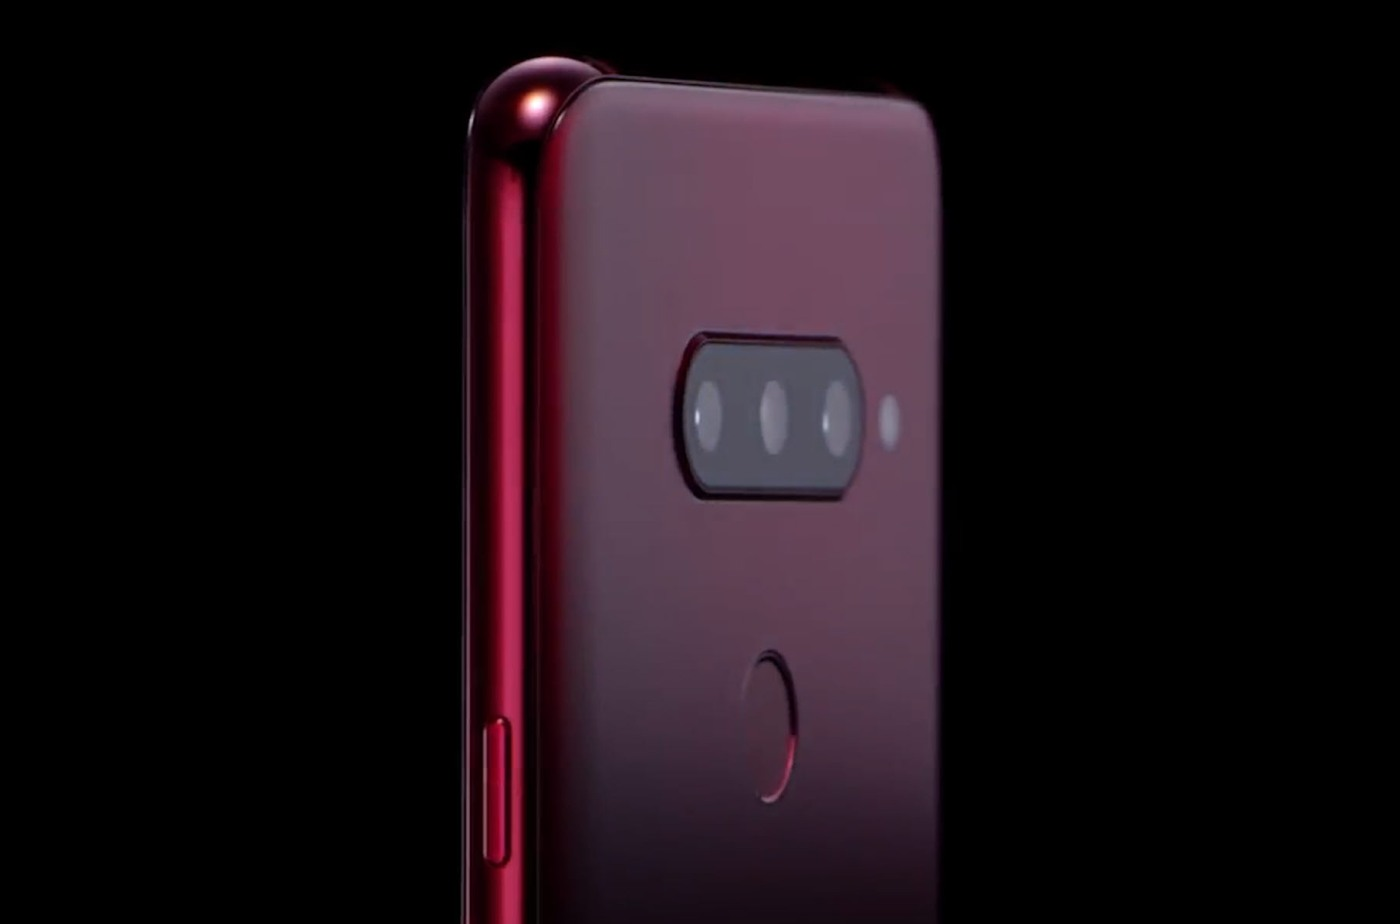 LG V40 ThinQ unveiled. Cameras, soft material and more